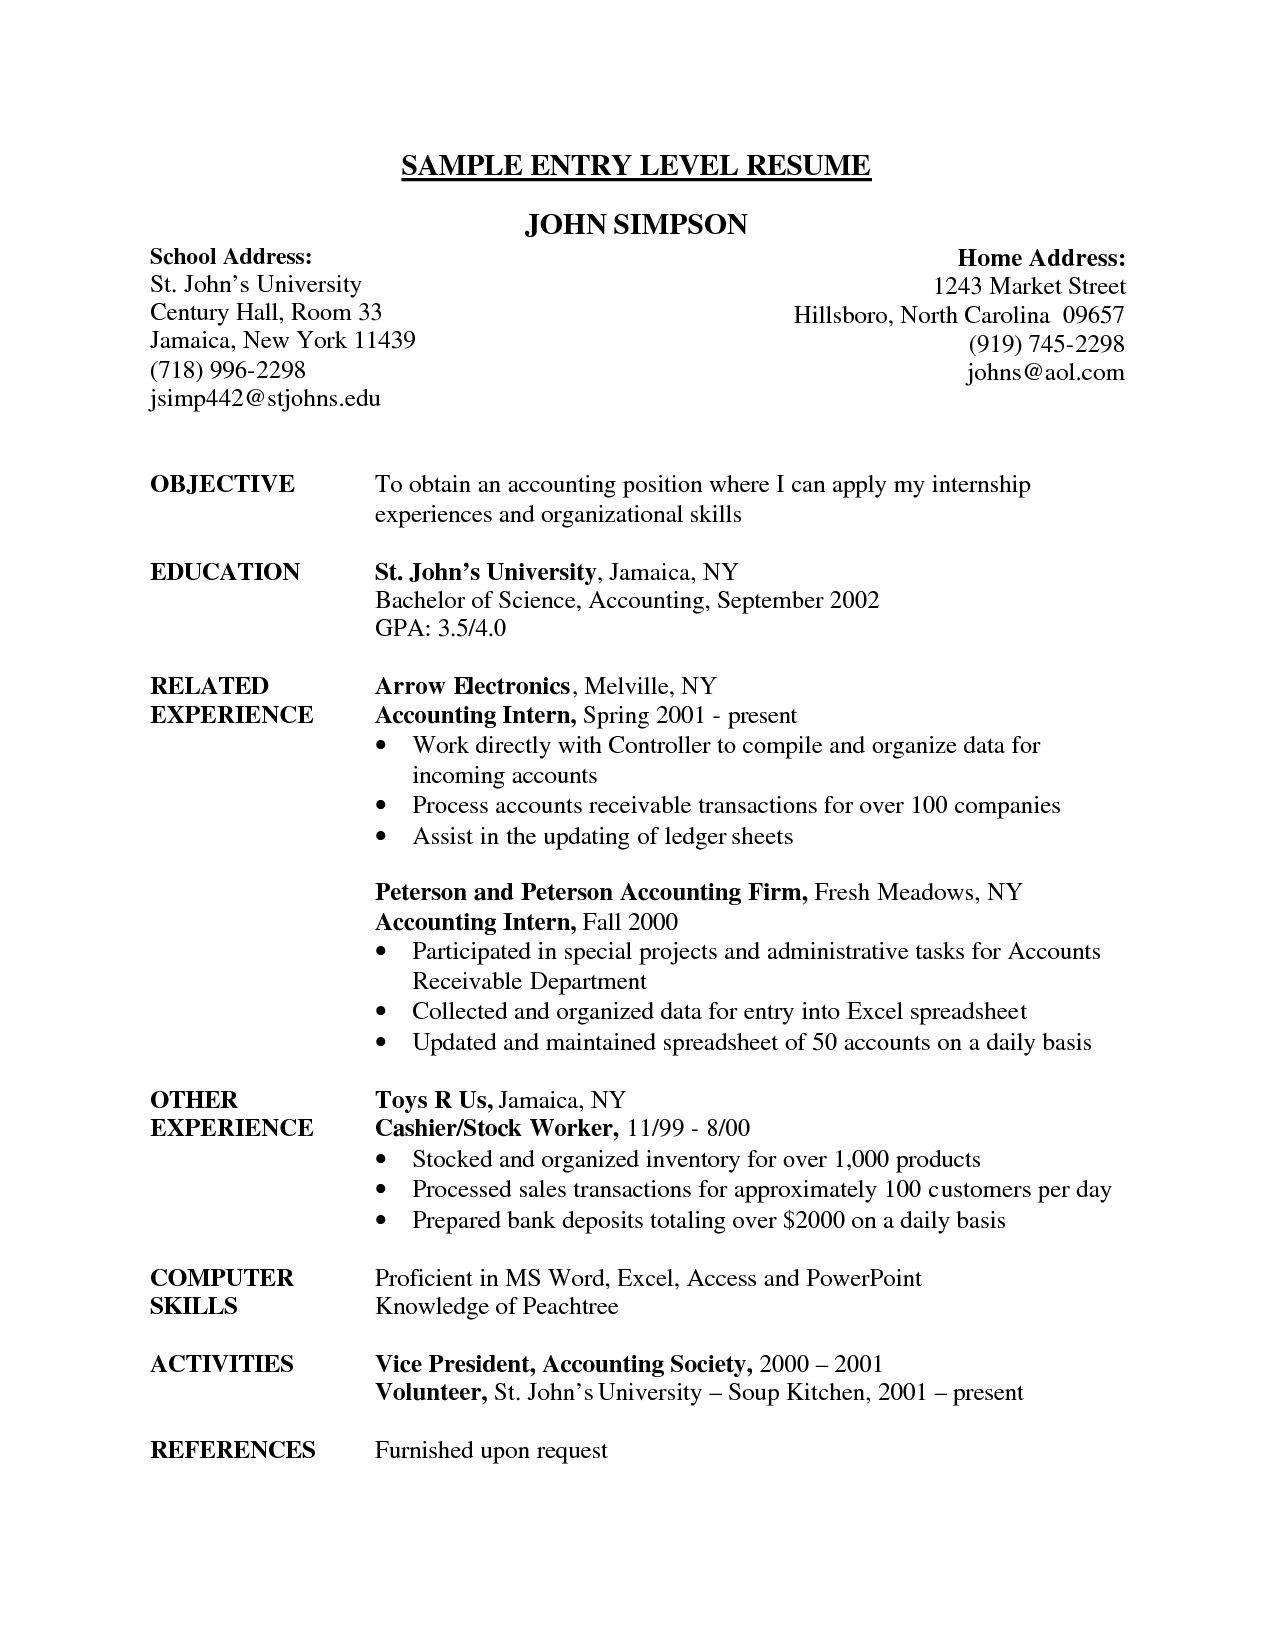 Career Objective For Resume Entry Level Resume Example Entry Level Job Resume Examples